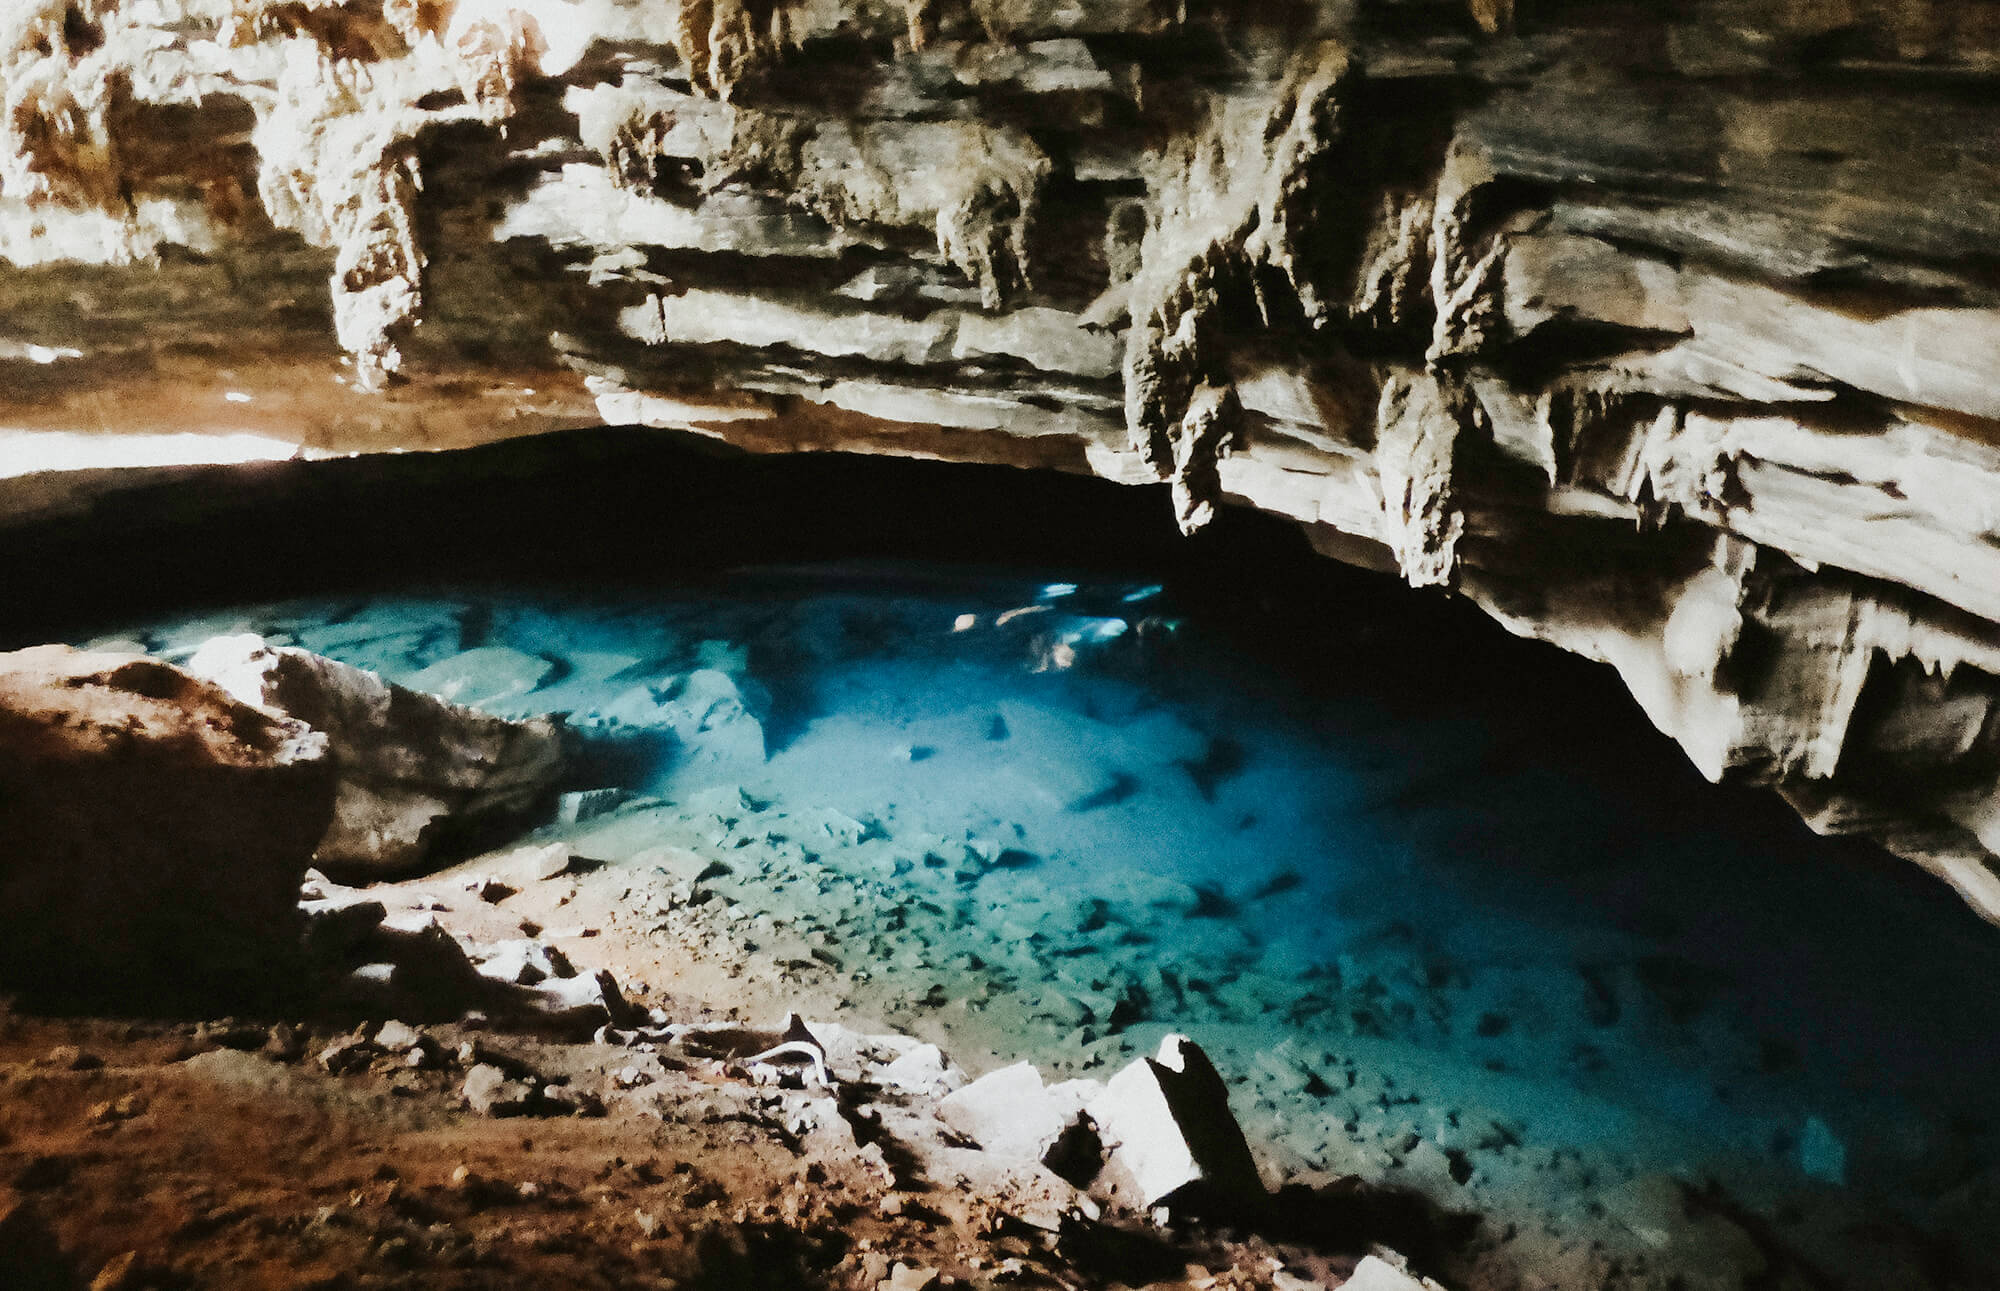 Plenty of time to explore Chapada Diamantina on our 3 to 4 week Brazil itinerary!